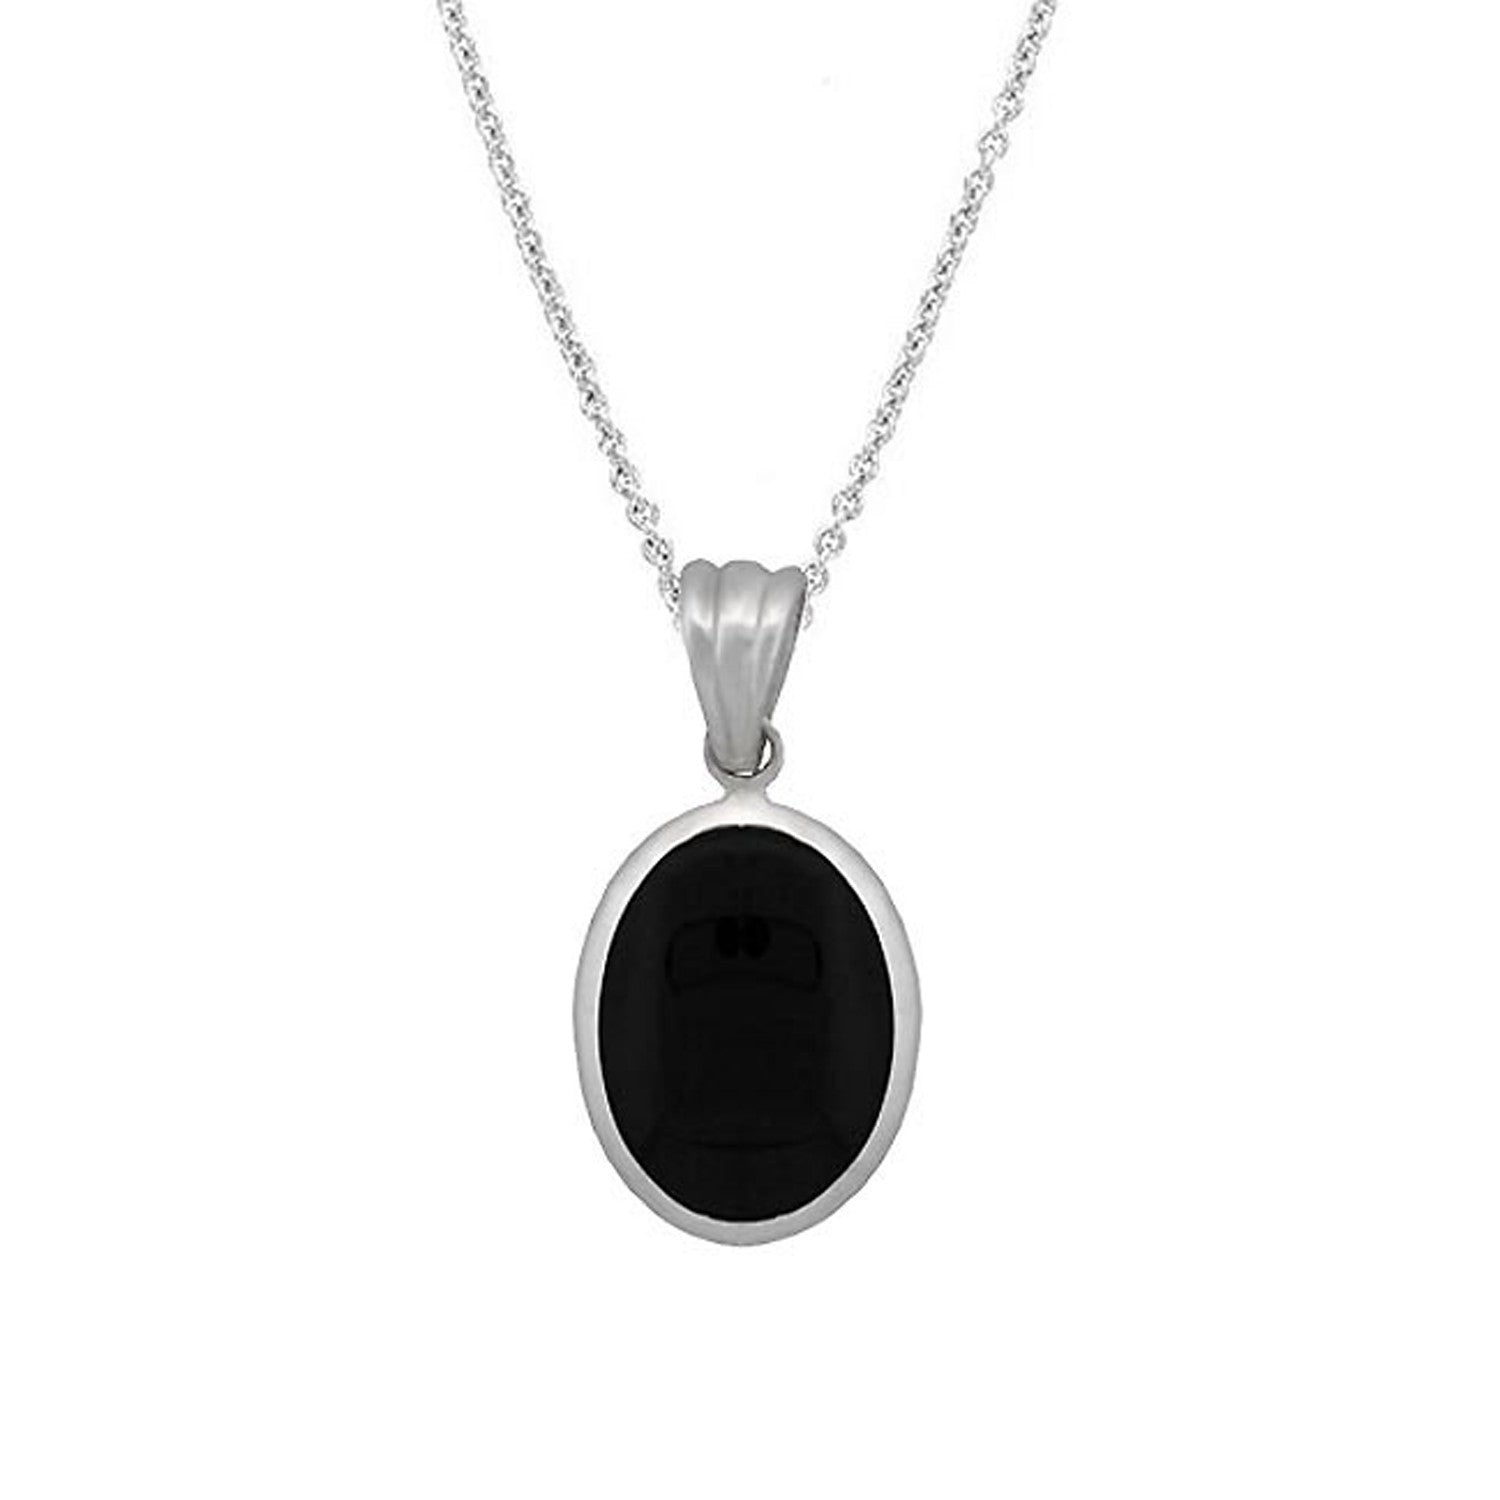 Oval Onyx Stone Pendant in Sterling Silver - 18 Inches